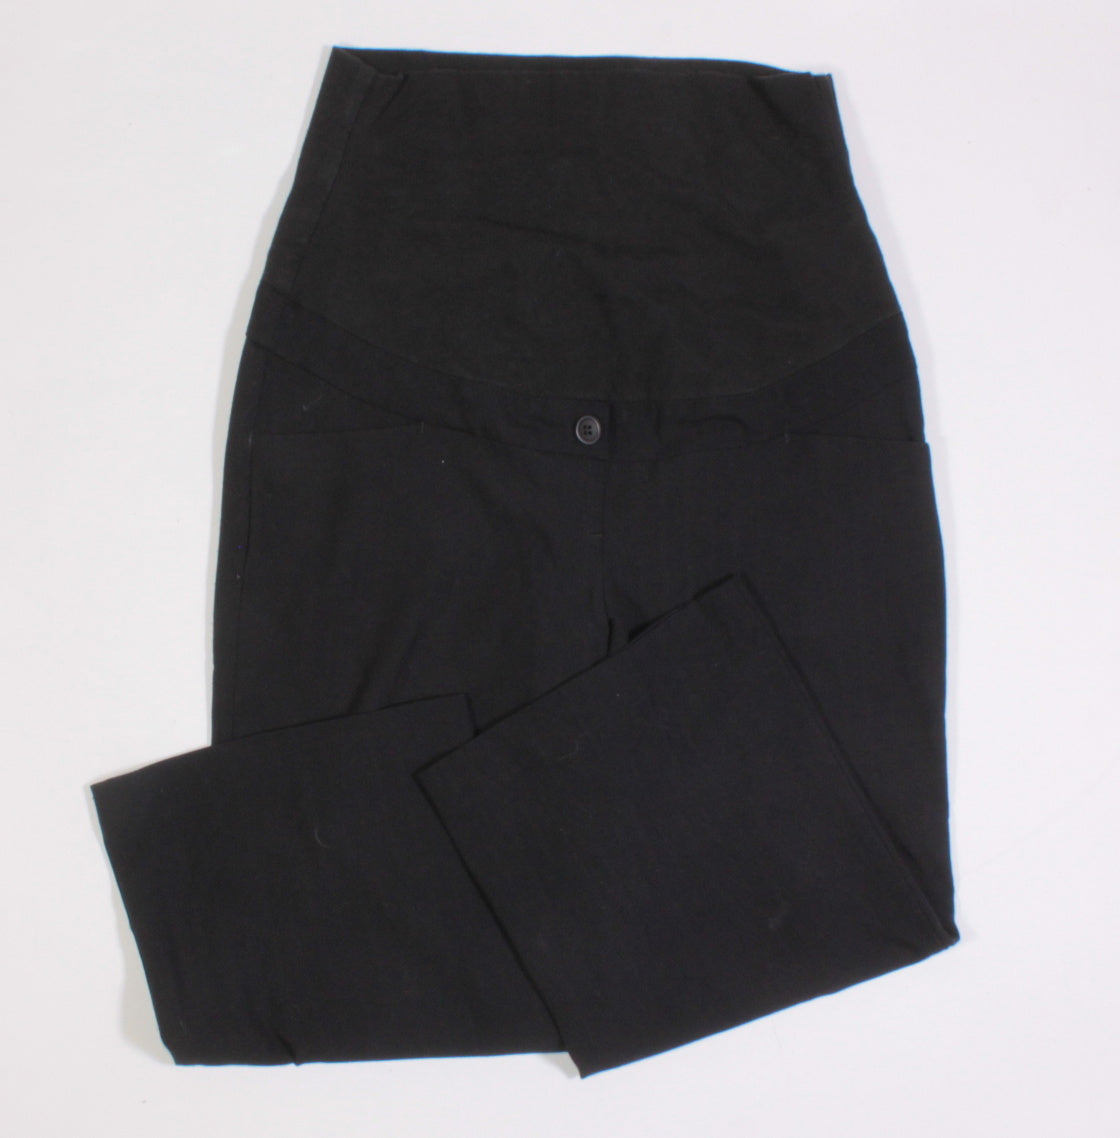 THYME MATERNITY BLACK CAPRI LENGTH DRESS PANT XS EUC